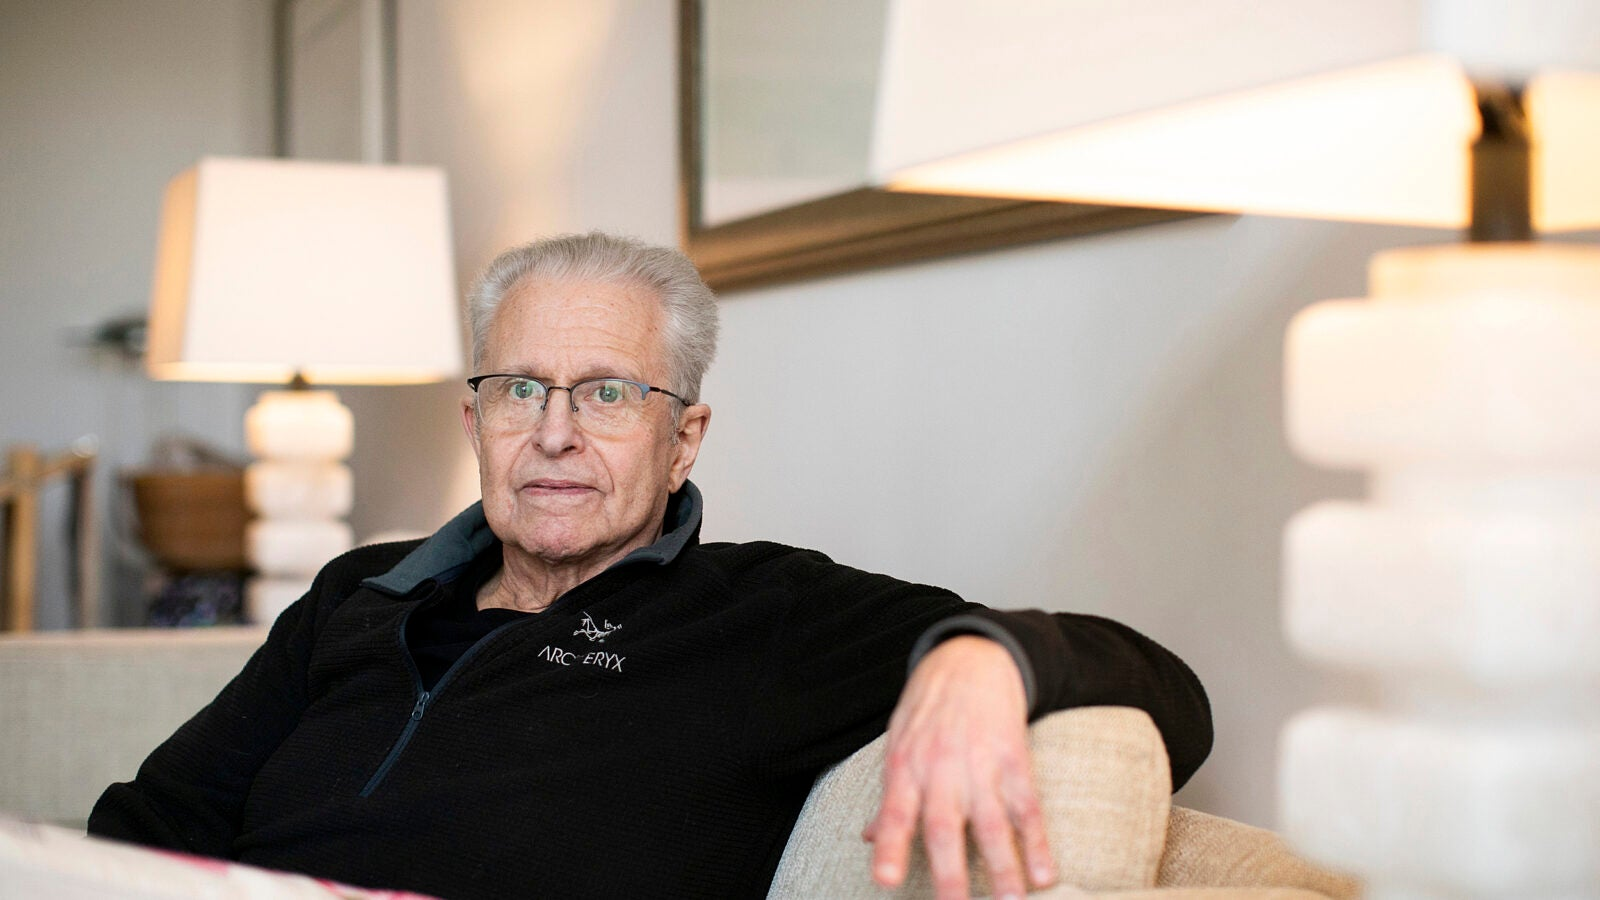 Laurence Tribe speaks on his career in constitutional law ...